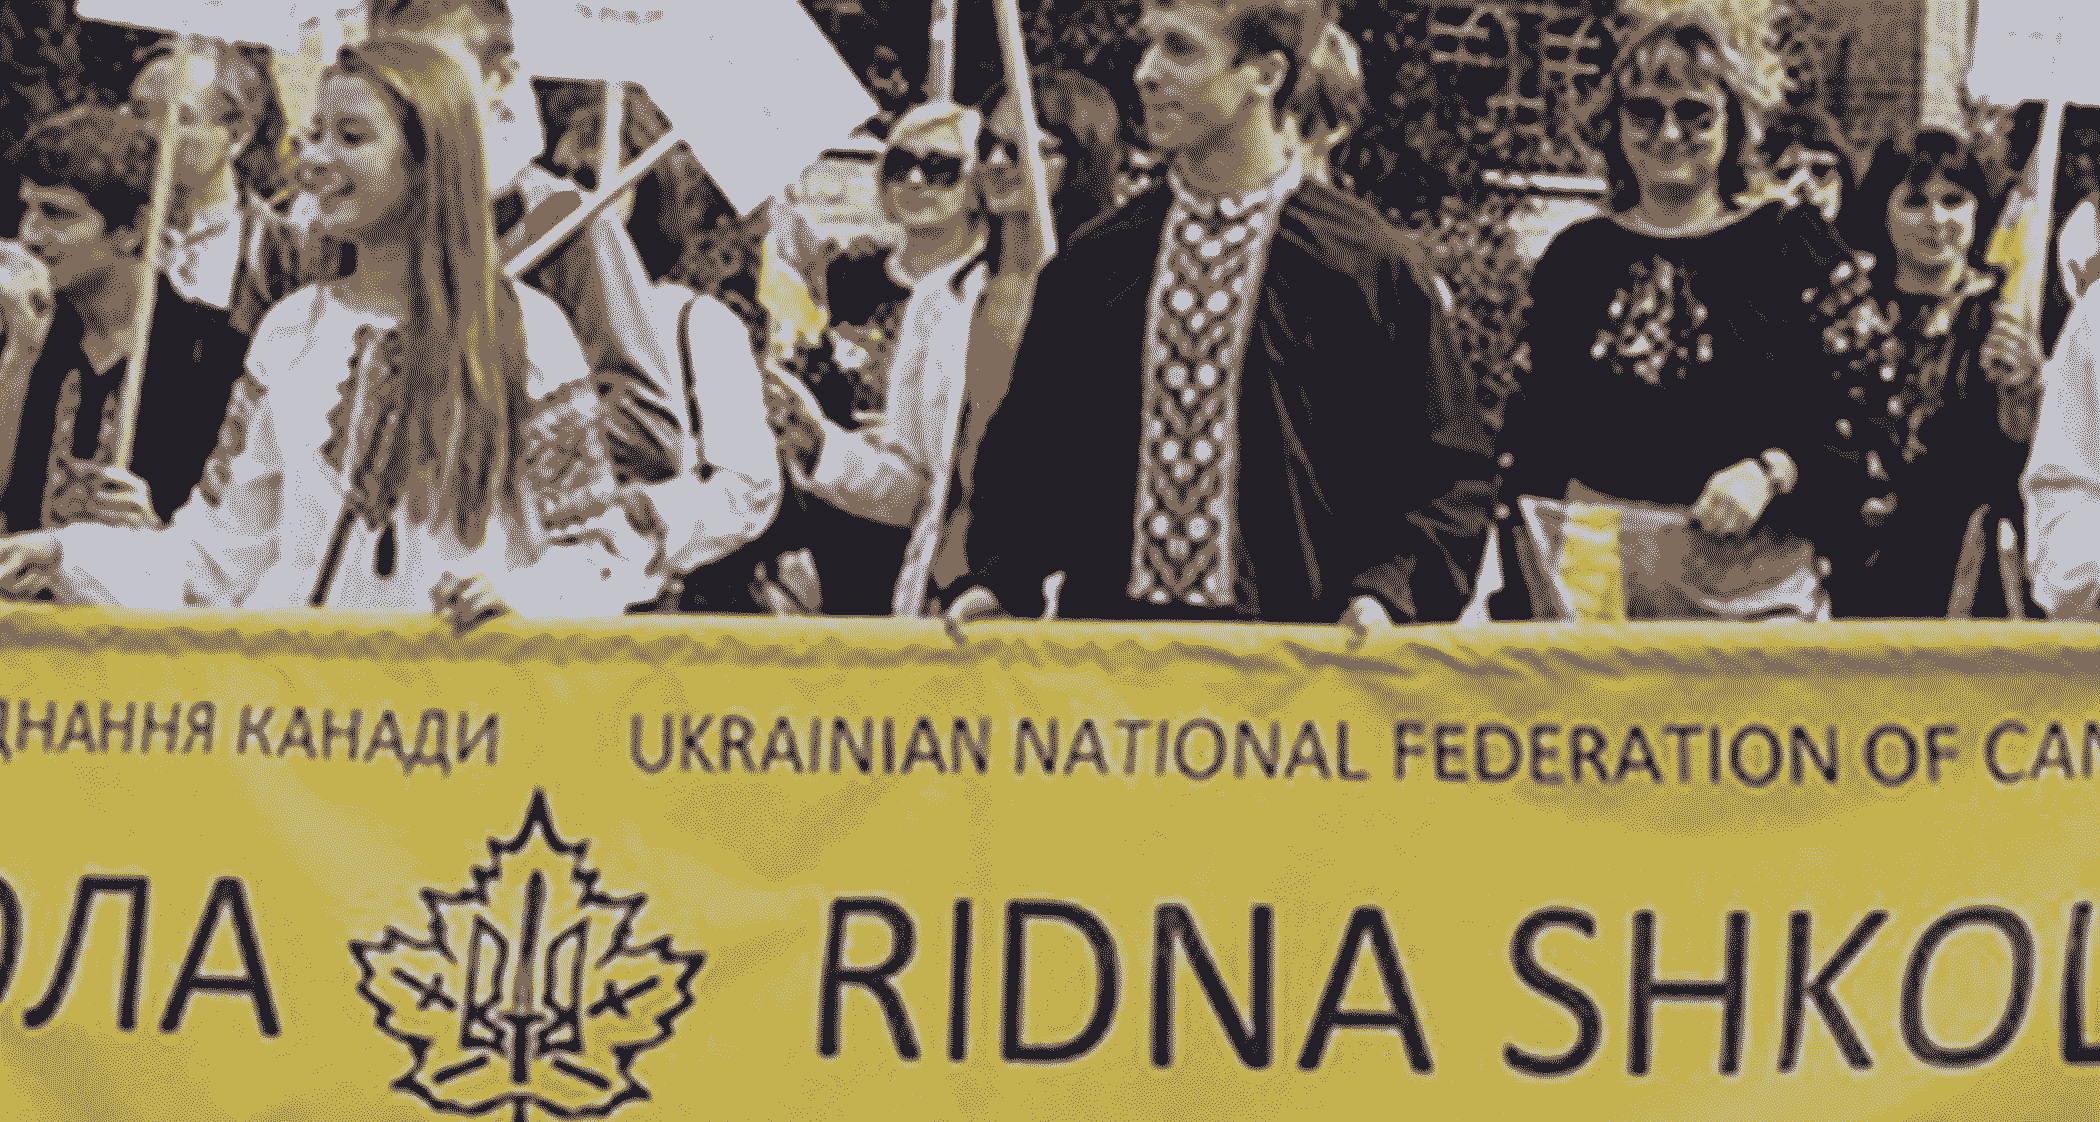 RIDNA SHKOLA INITIATIVE